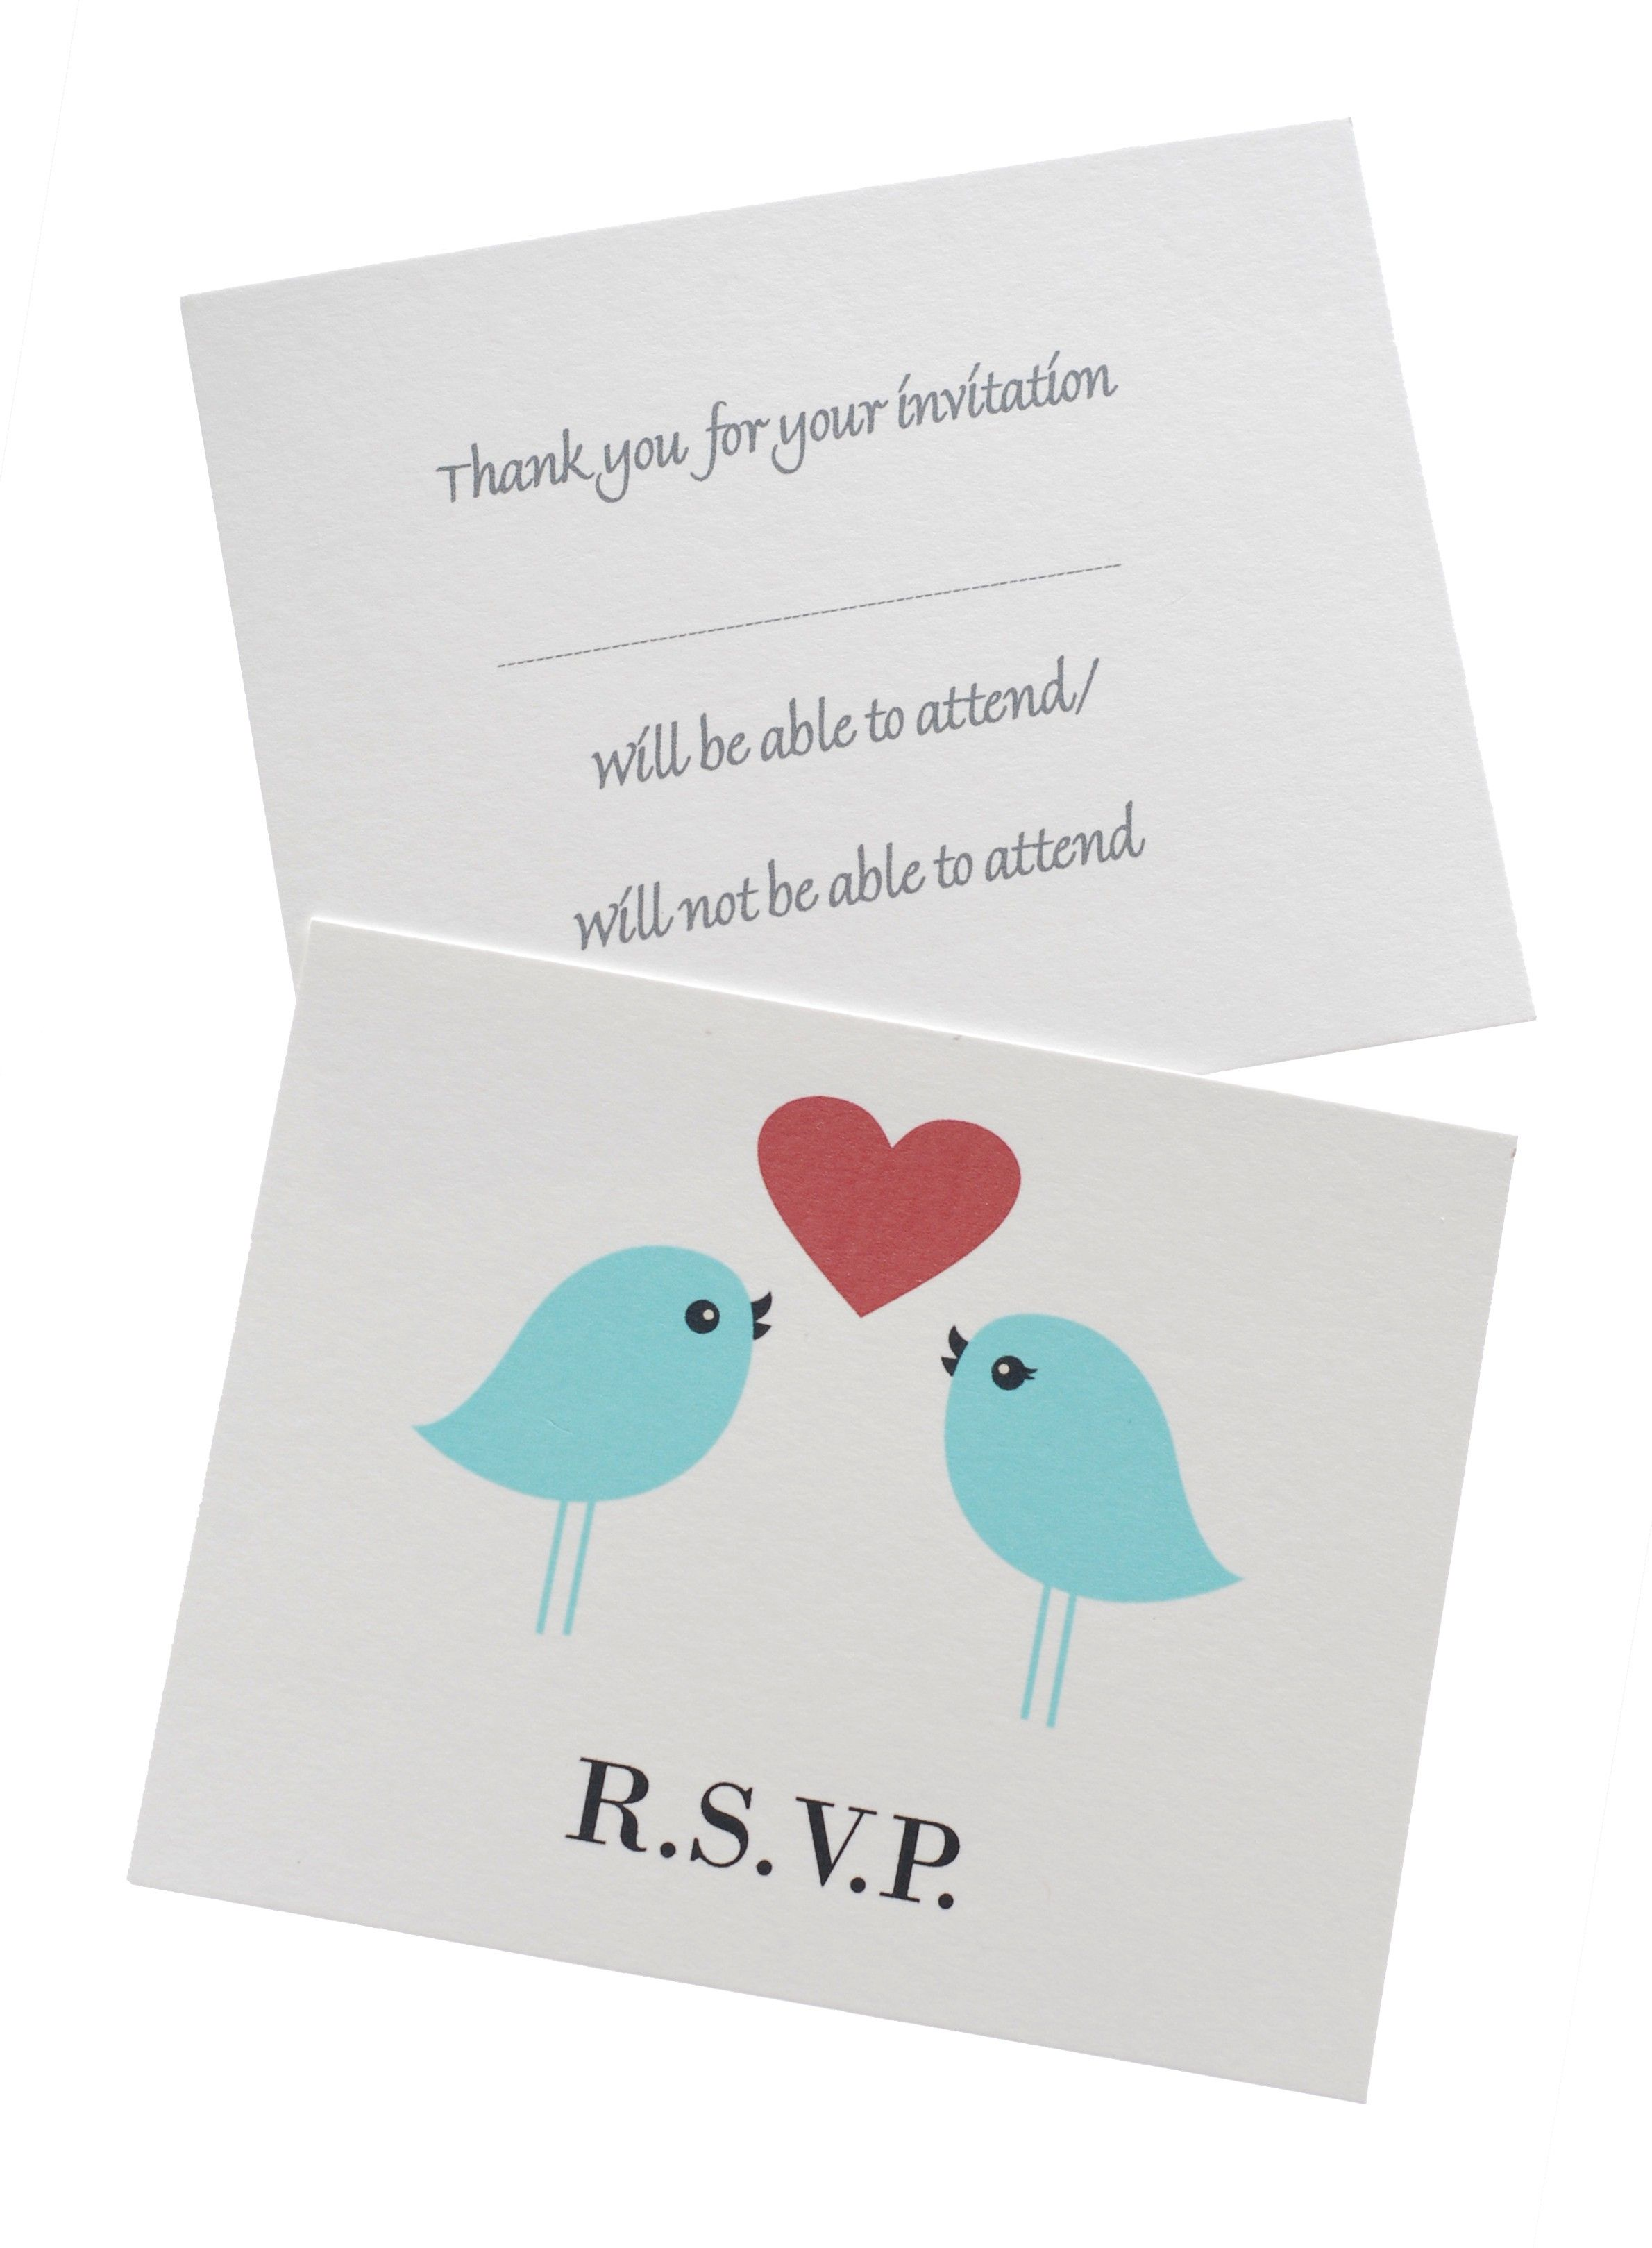 Love Birds Small RSVP Wedding Reply Cards (With images